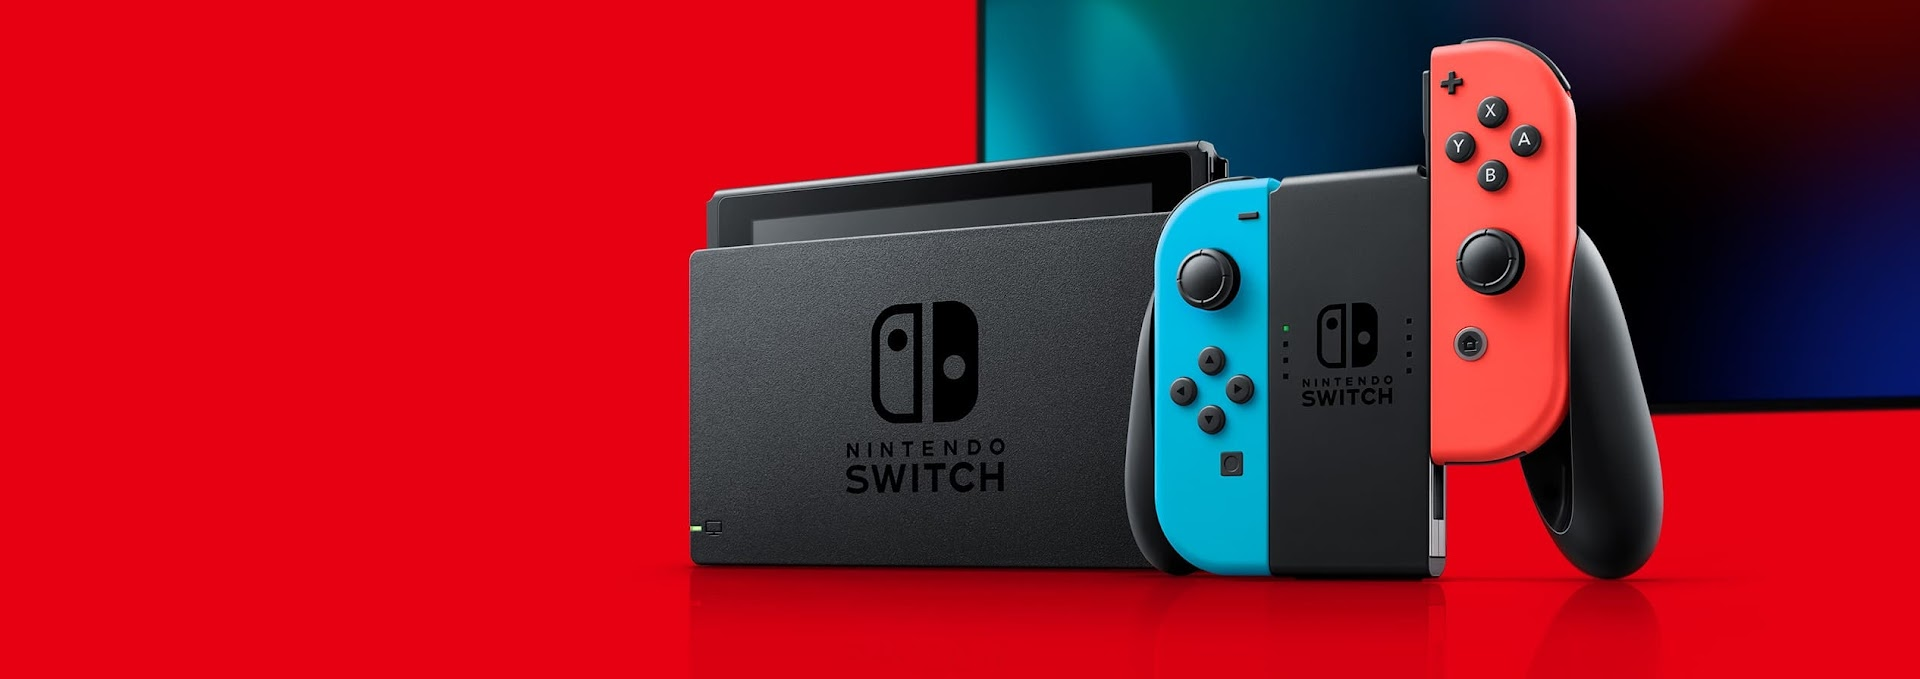 Could we be seeing a new Nintendo Switch soon